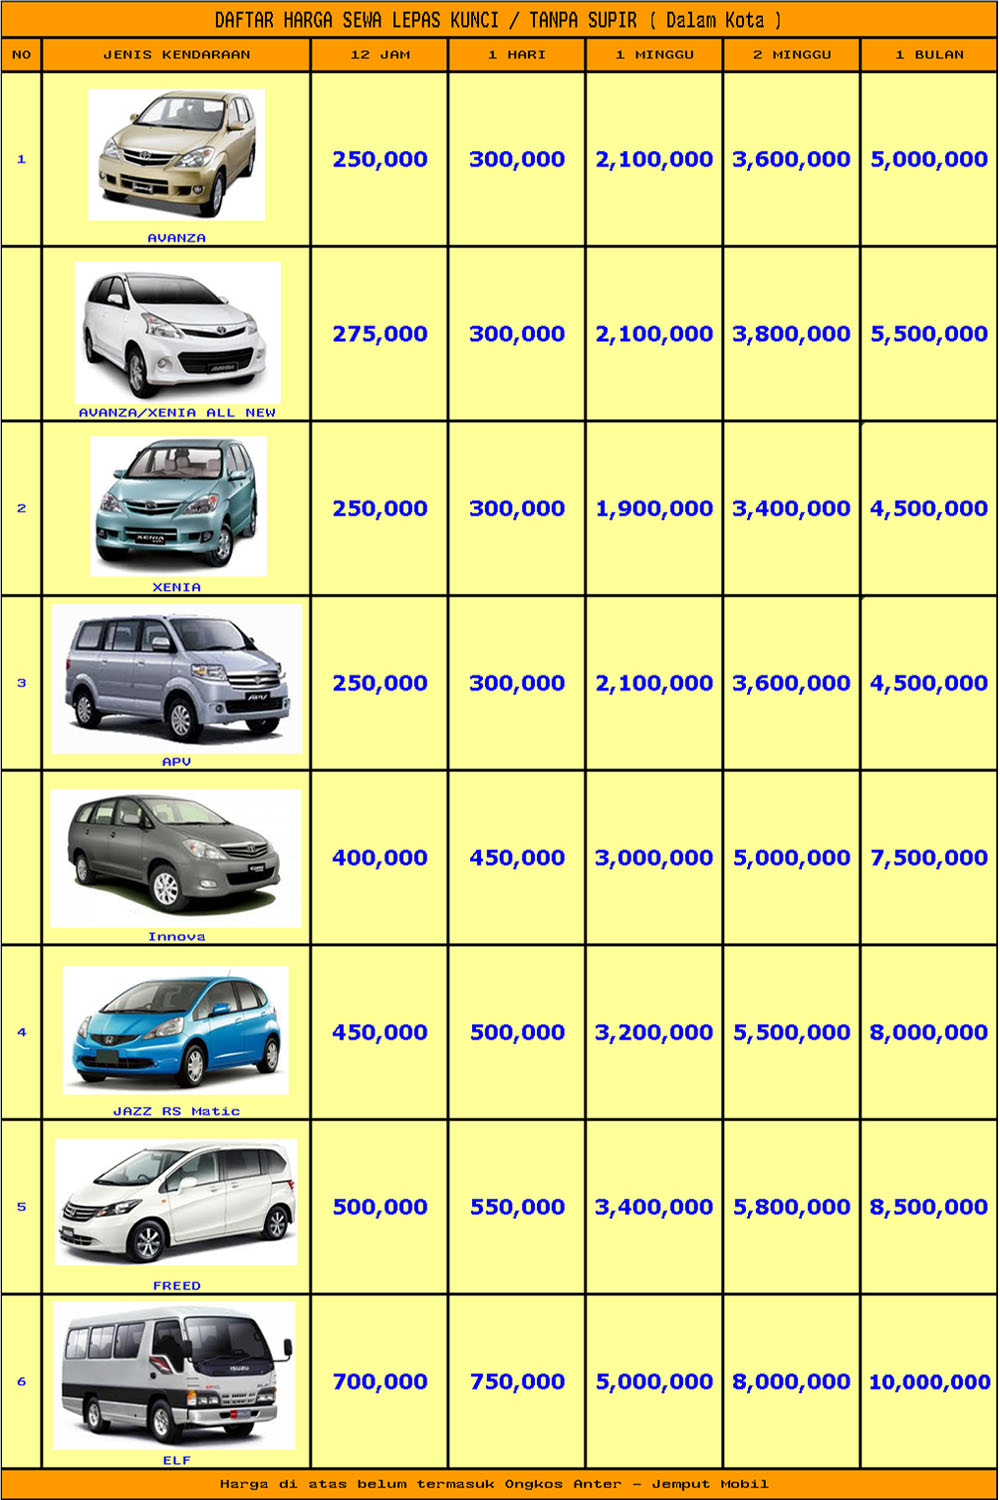 Elf To Kenya Car Dealer Importer Amp Exporters